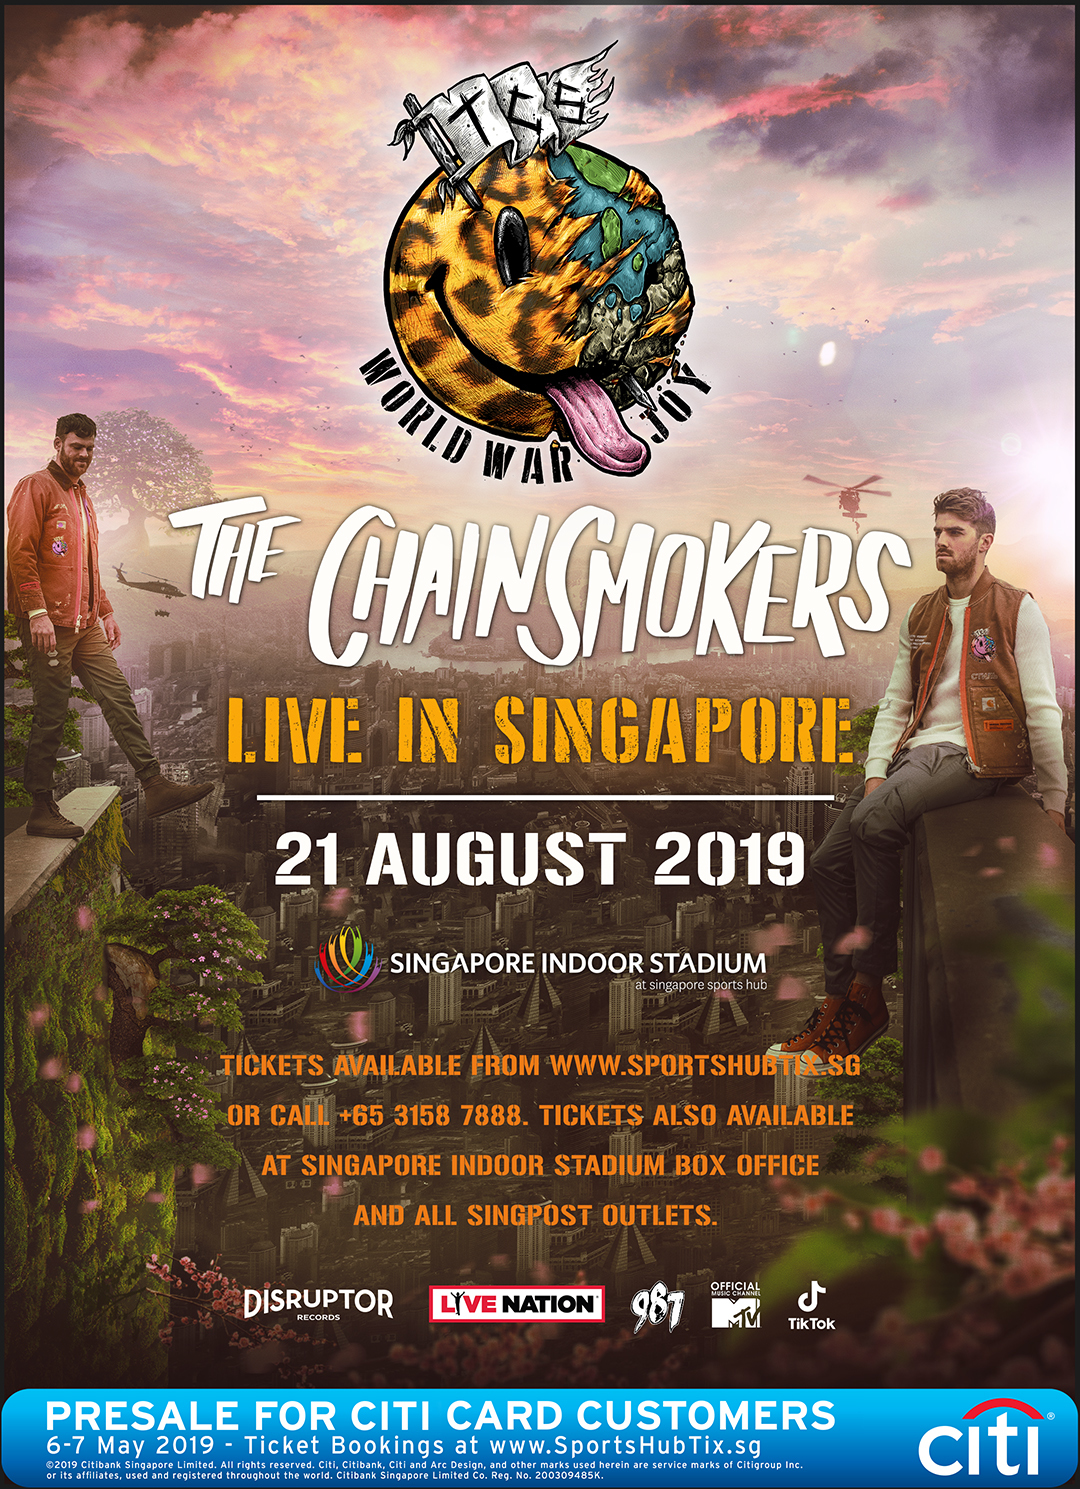 BREAKING: The Chainsmokers to perform in Singapore this August |